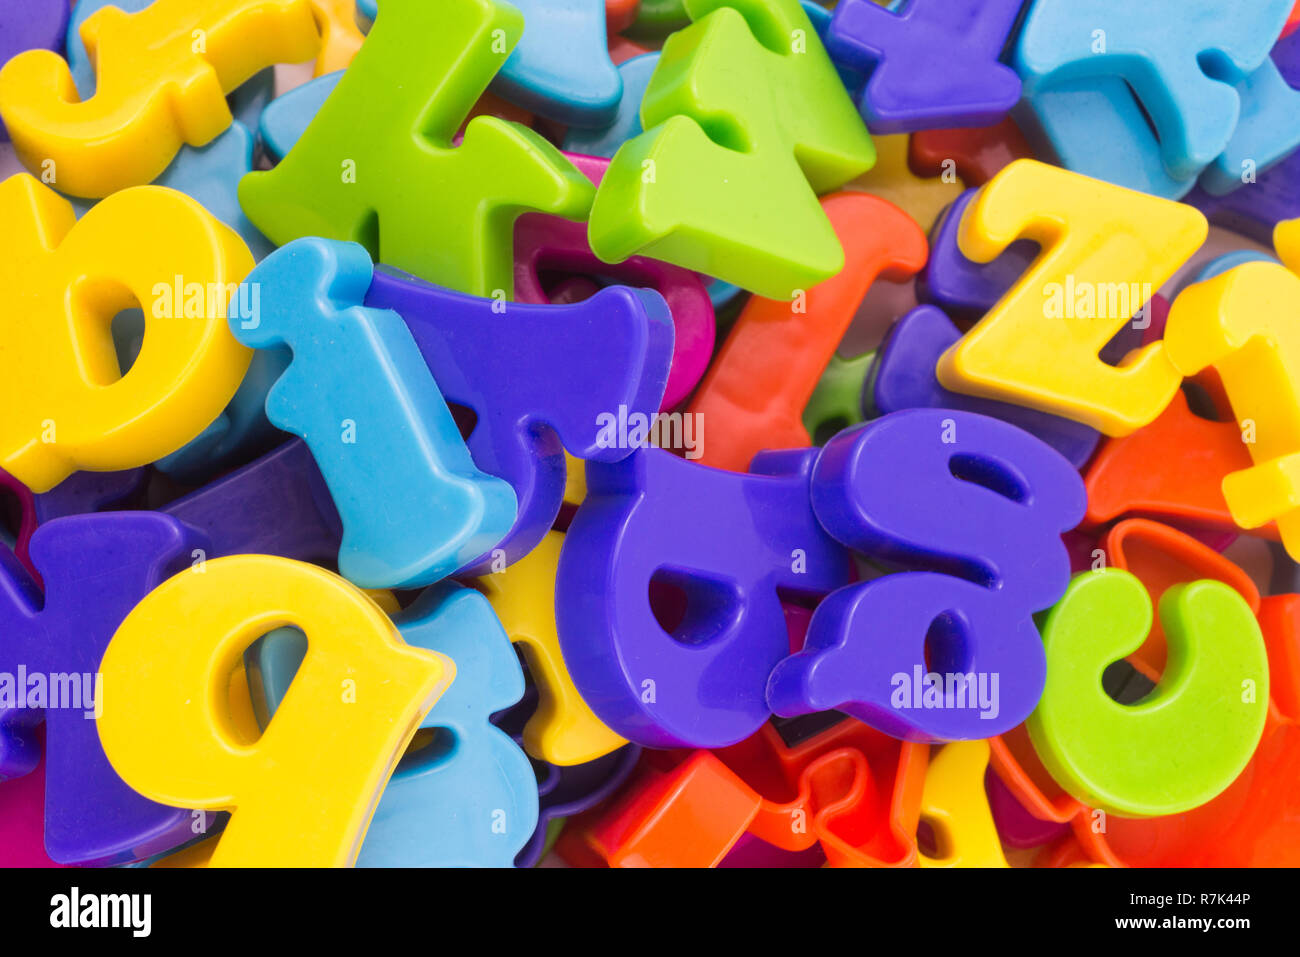 Close up of colourful plastic letters.Concept of education, online and home education. - Stock Image